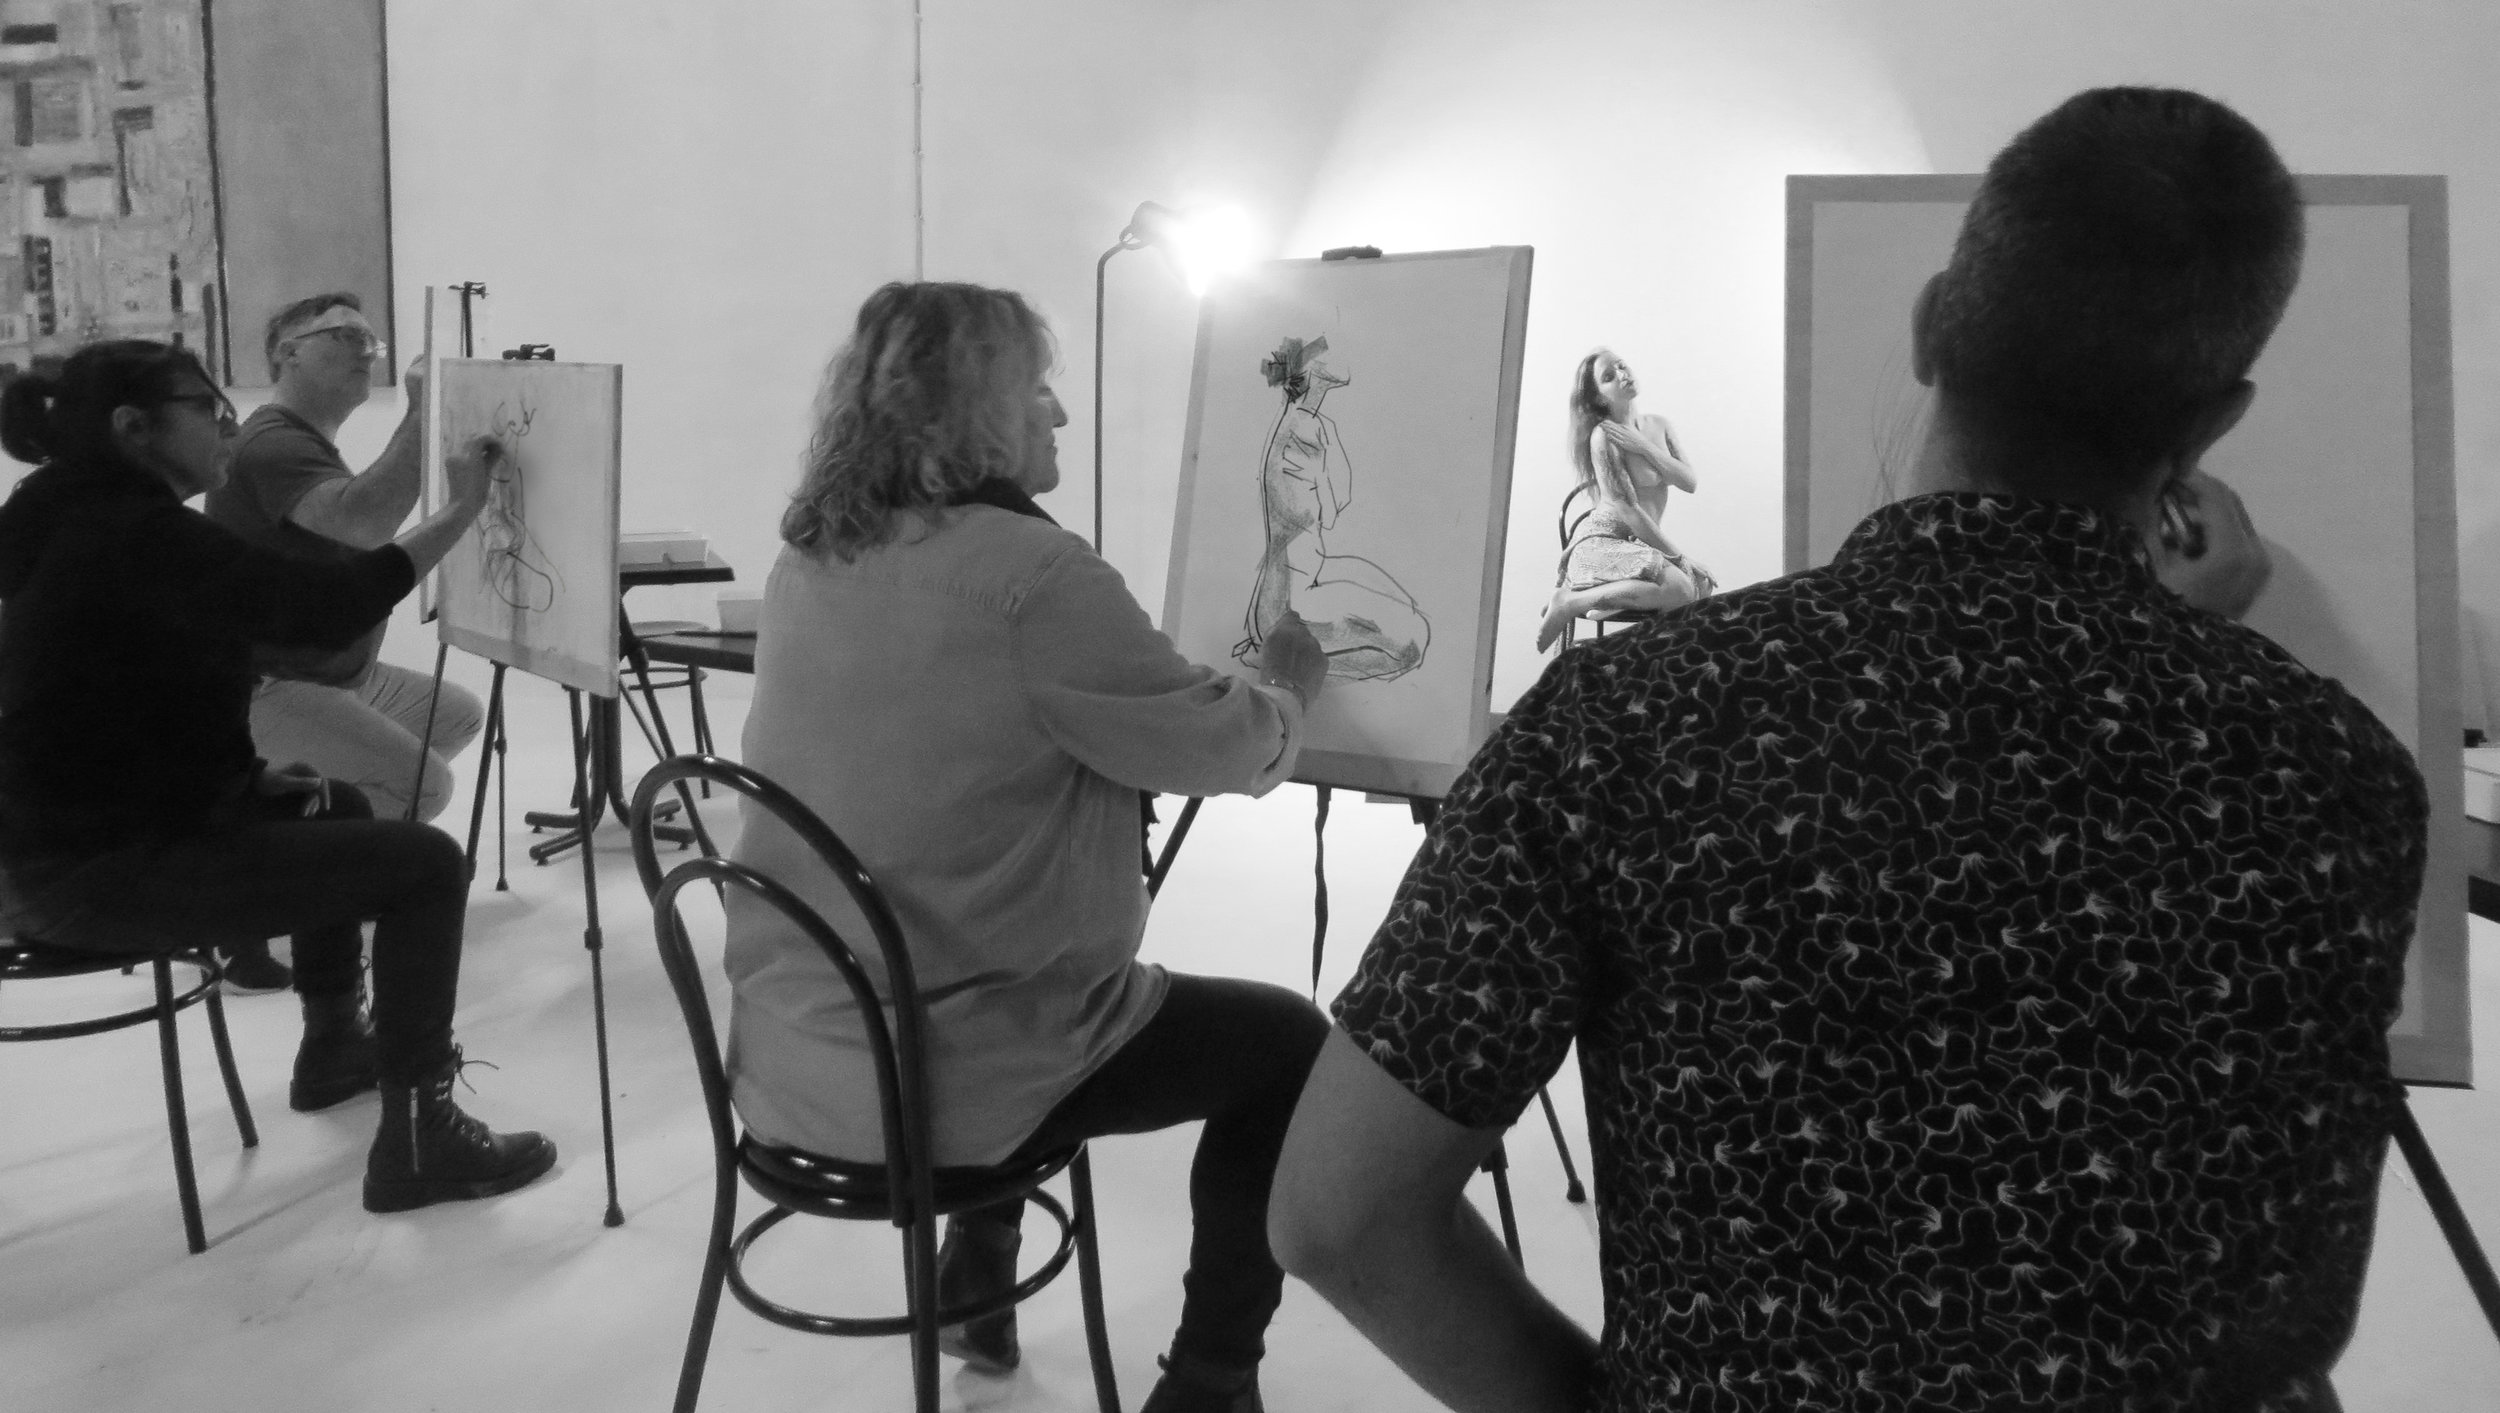 Art-cafe-home-gallery-life-drawing.jpg